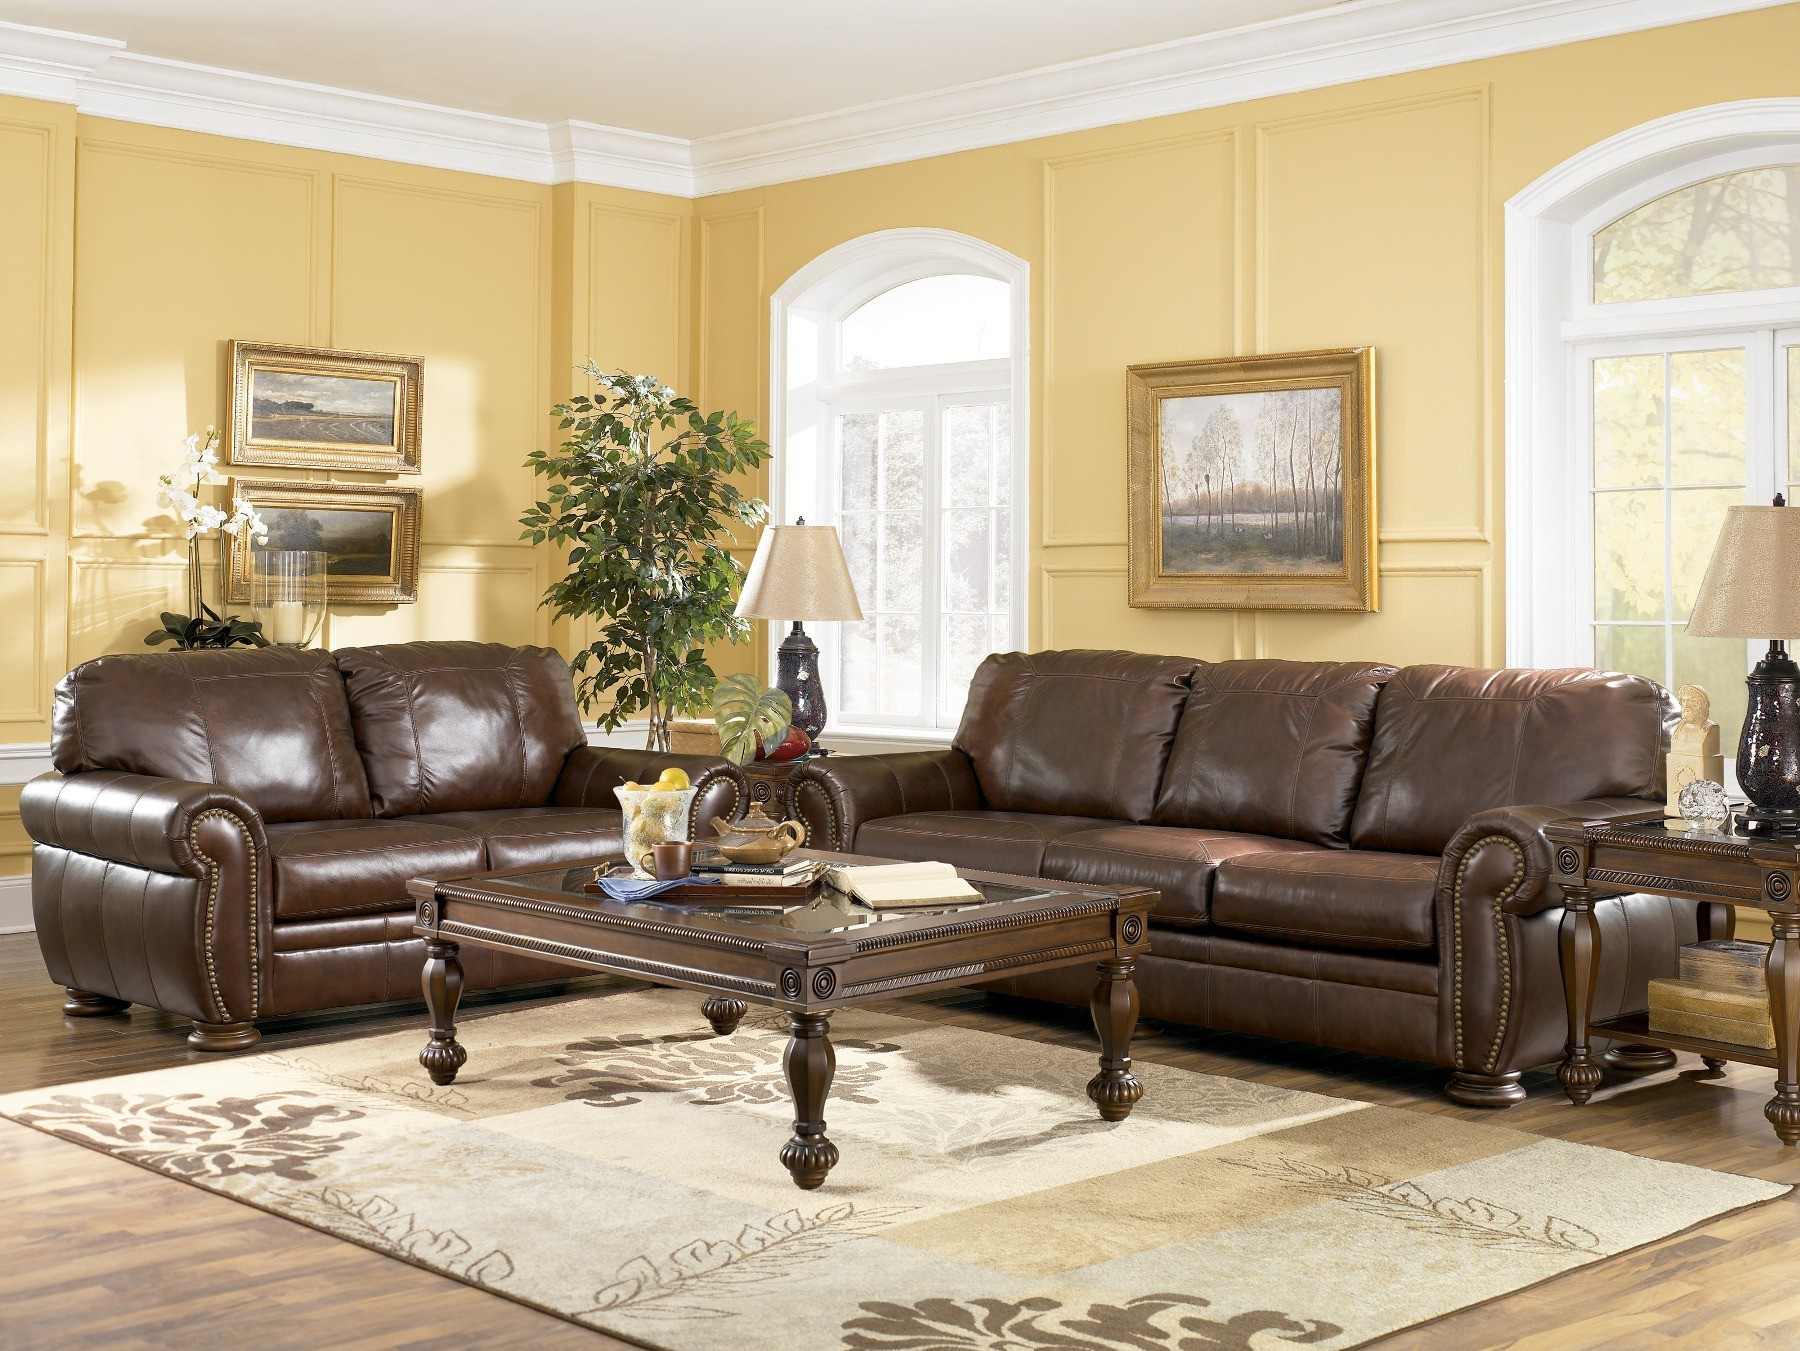 Palmer Walnut Living Room Set By Ashley Furniture 20500 Leather Living Room